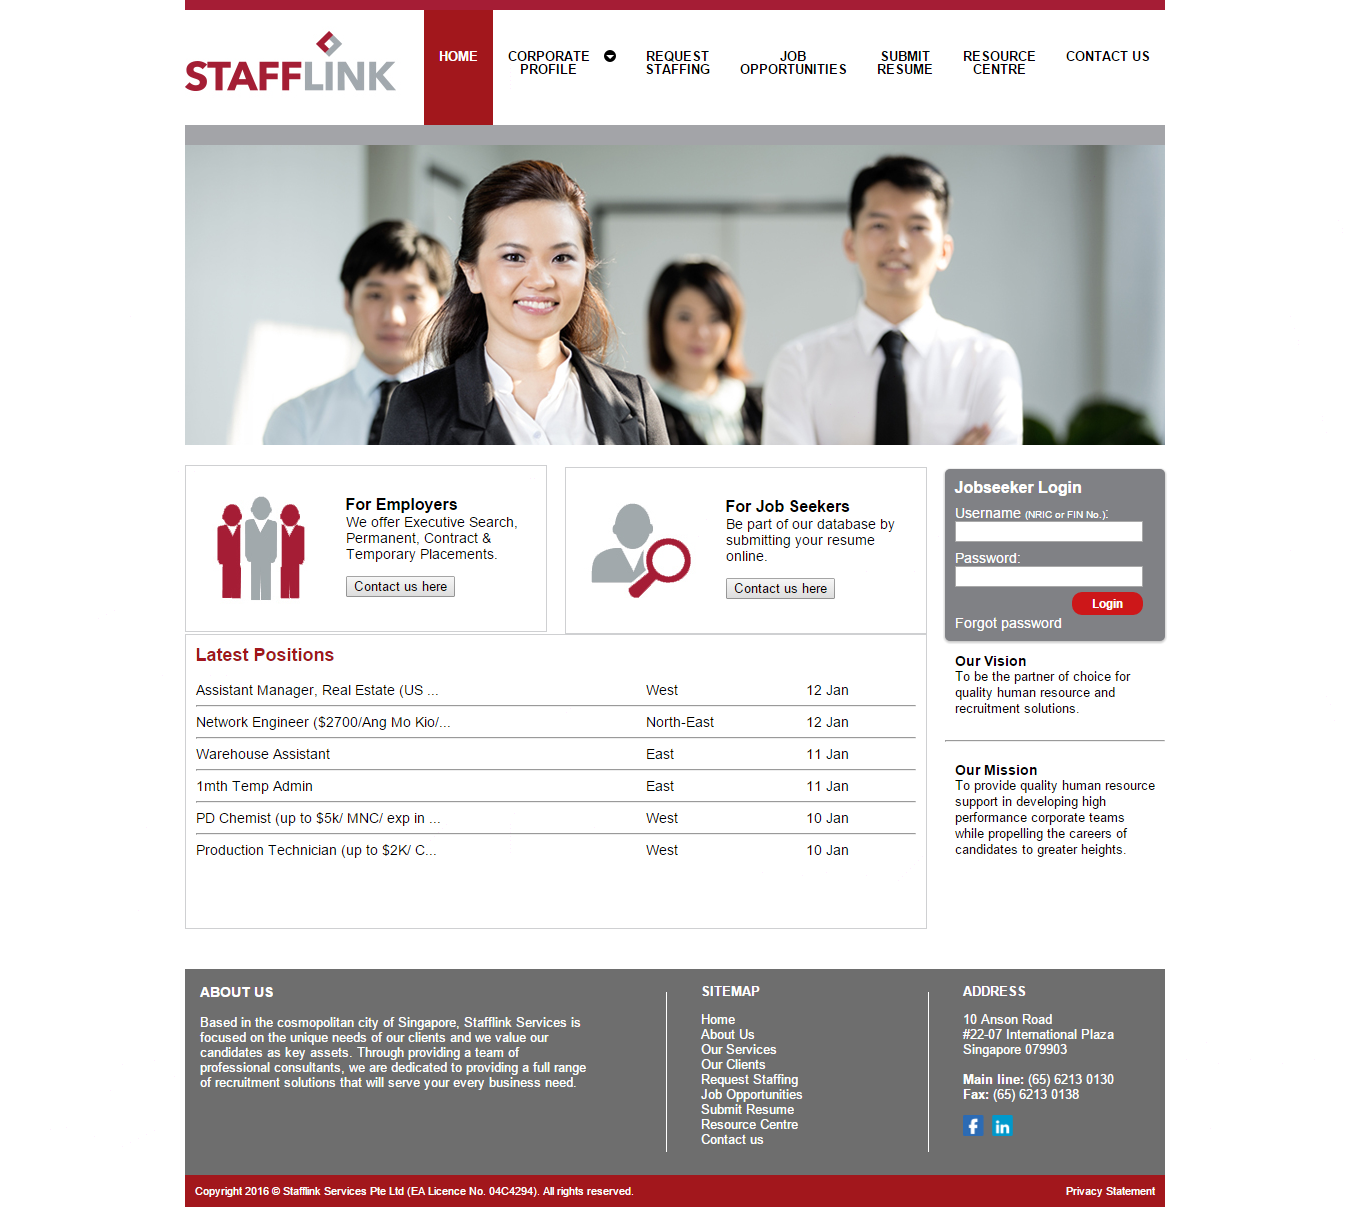 Wordpress Web Design Proposal: nice Website Templates Design Proposal for Adecco Singapore rh:pinterest.com,Design